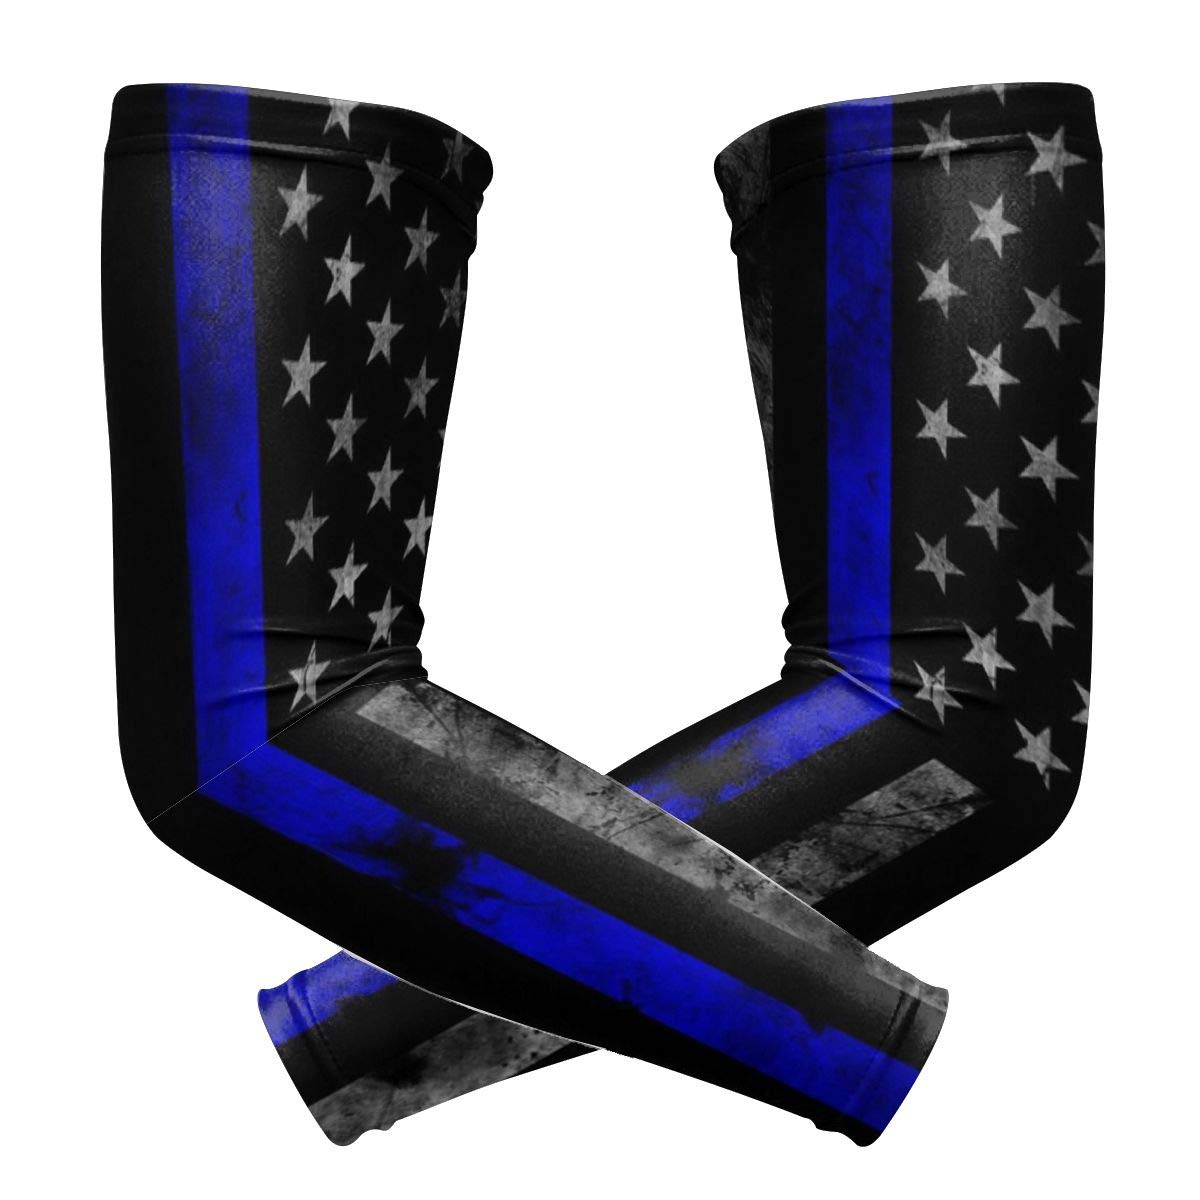 Basketball BLACK SP Thin Blue Line American Flag Unisex Sports Compression Arm Sleeves UV Protection Cooling Or Warmer Arm Sleeves for Cycling Running